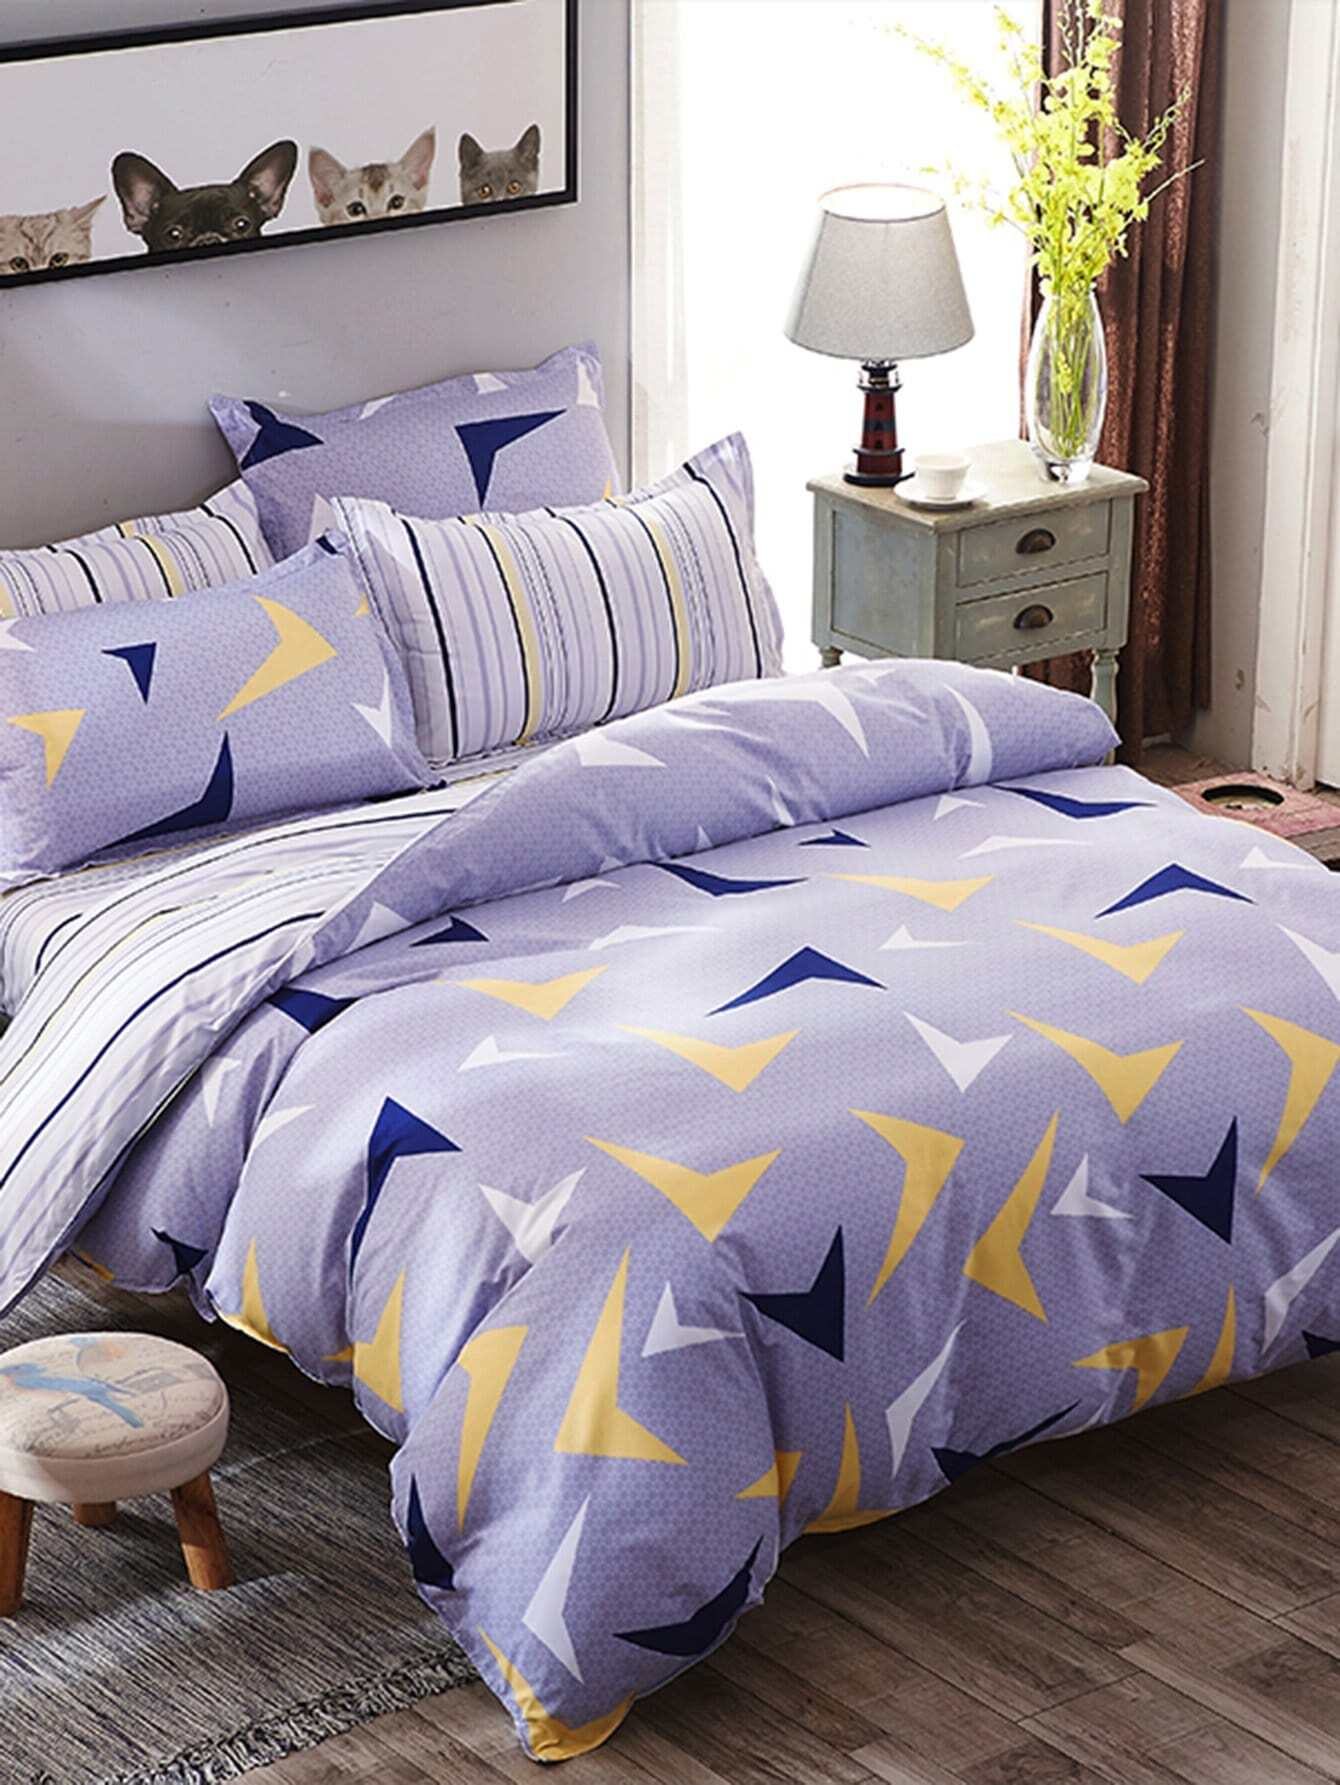 Geometric Print Striped Bedding Set vertical striped bedding set